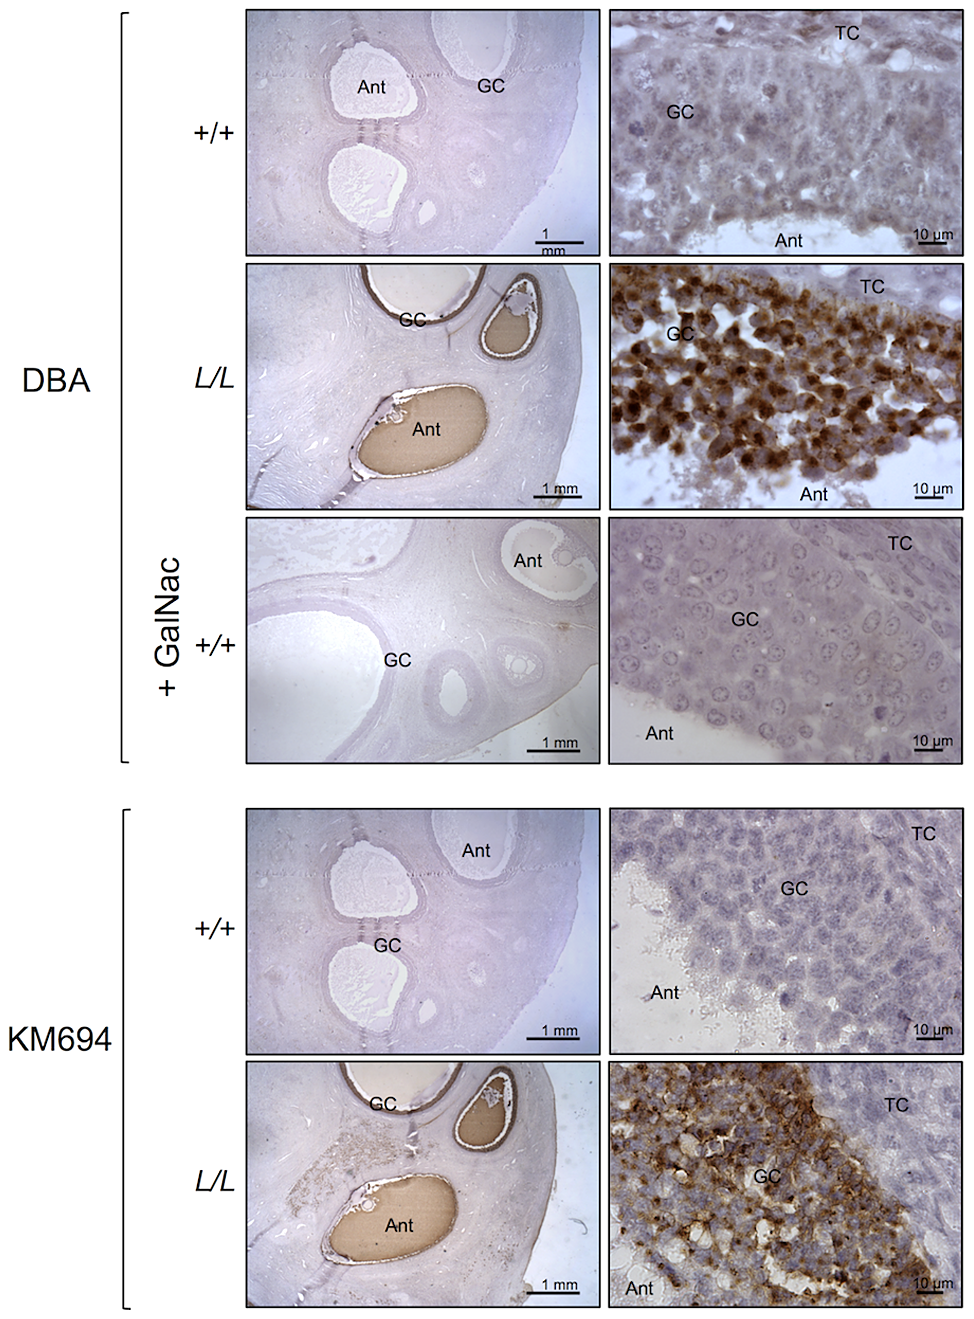 B4GALNT2 transferase activity revealed by DBA lectin and KM694 antibody staining in Lacaune sheep ovary.